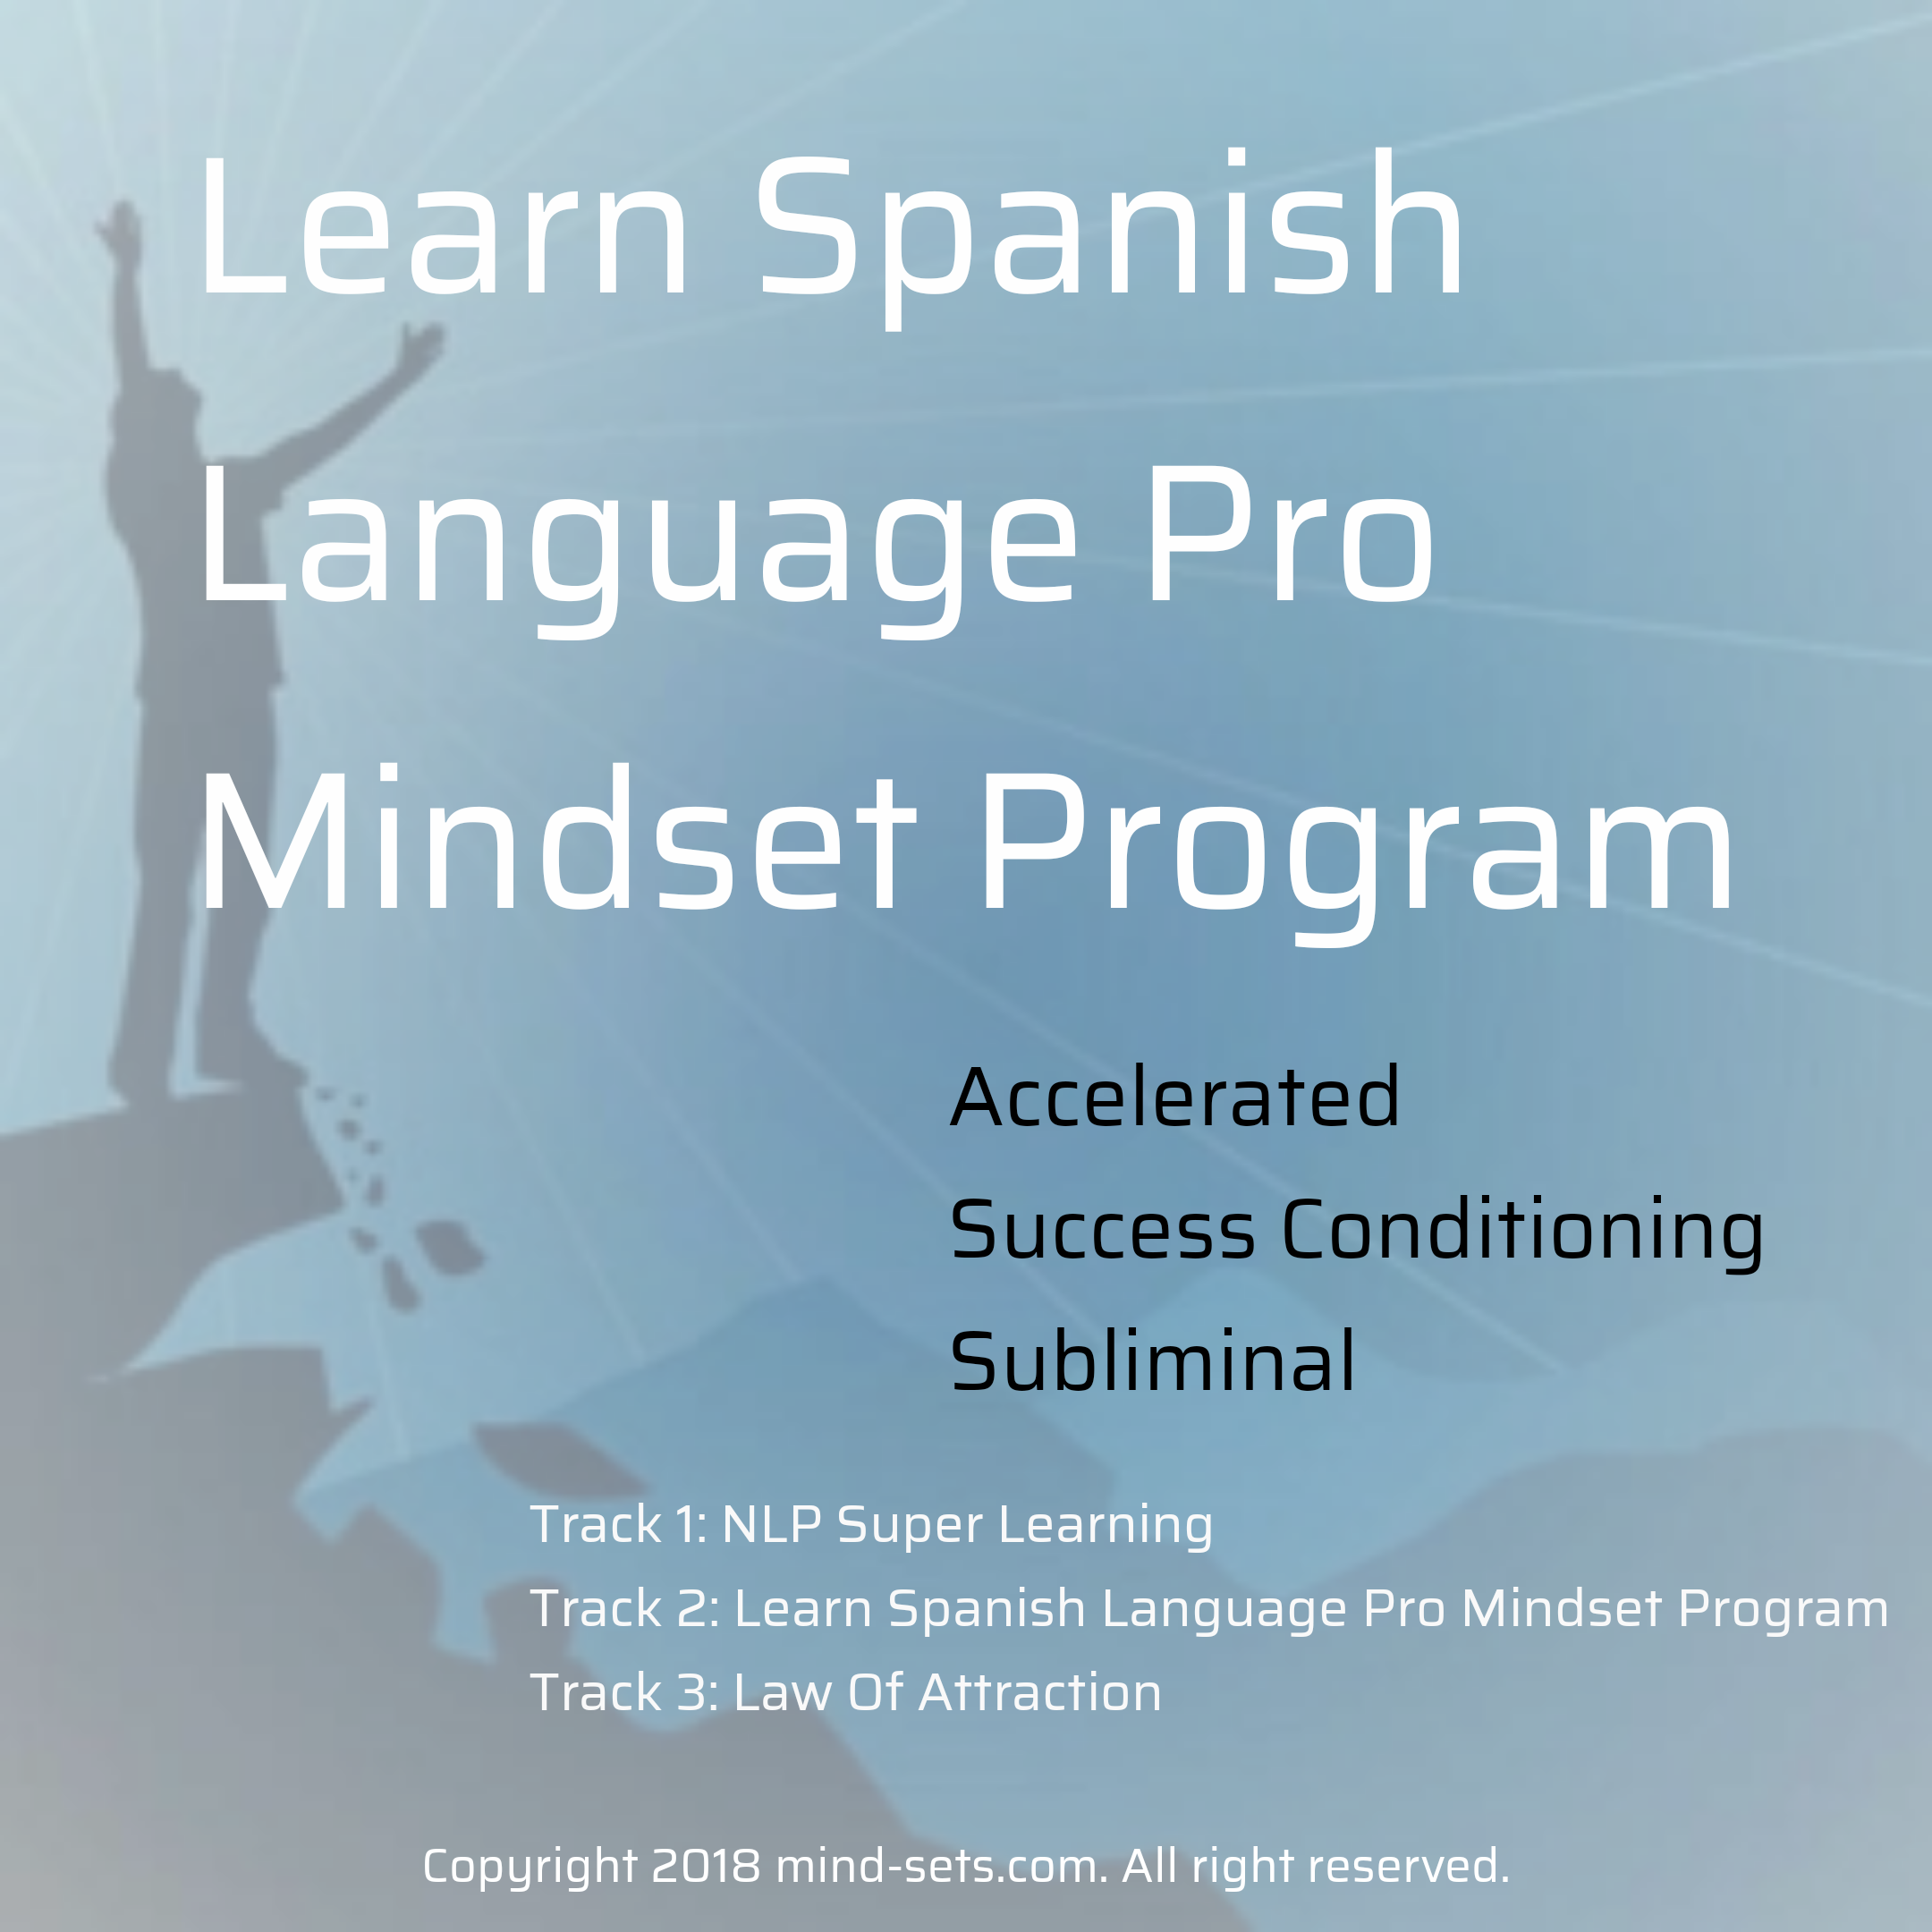 Learn Spanish Language Pro Mindset Program